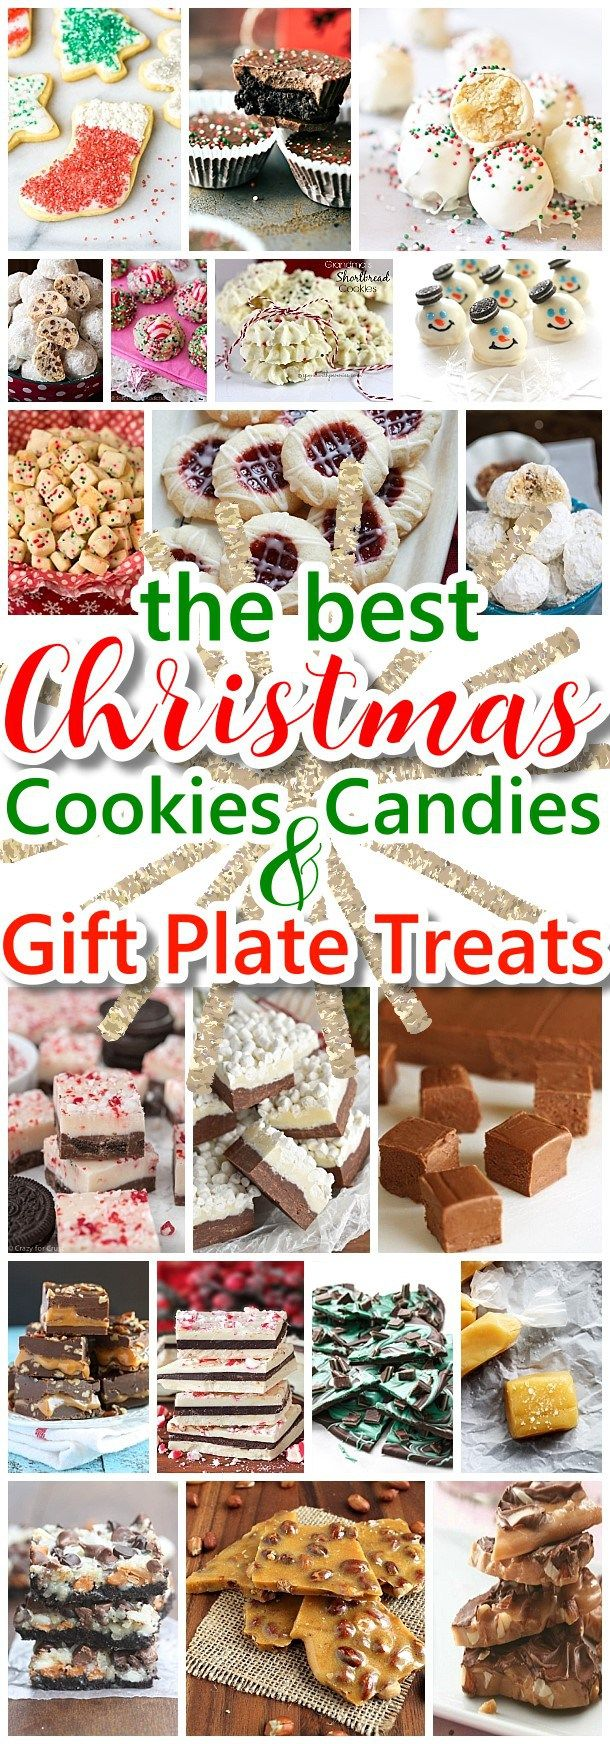 The BEST Christmas Cookies, Fudge, Candy, Barks and Brittles Recipes ...